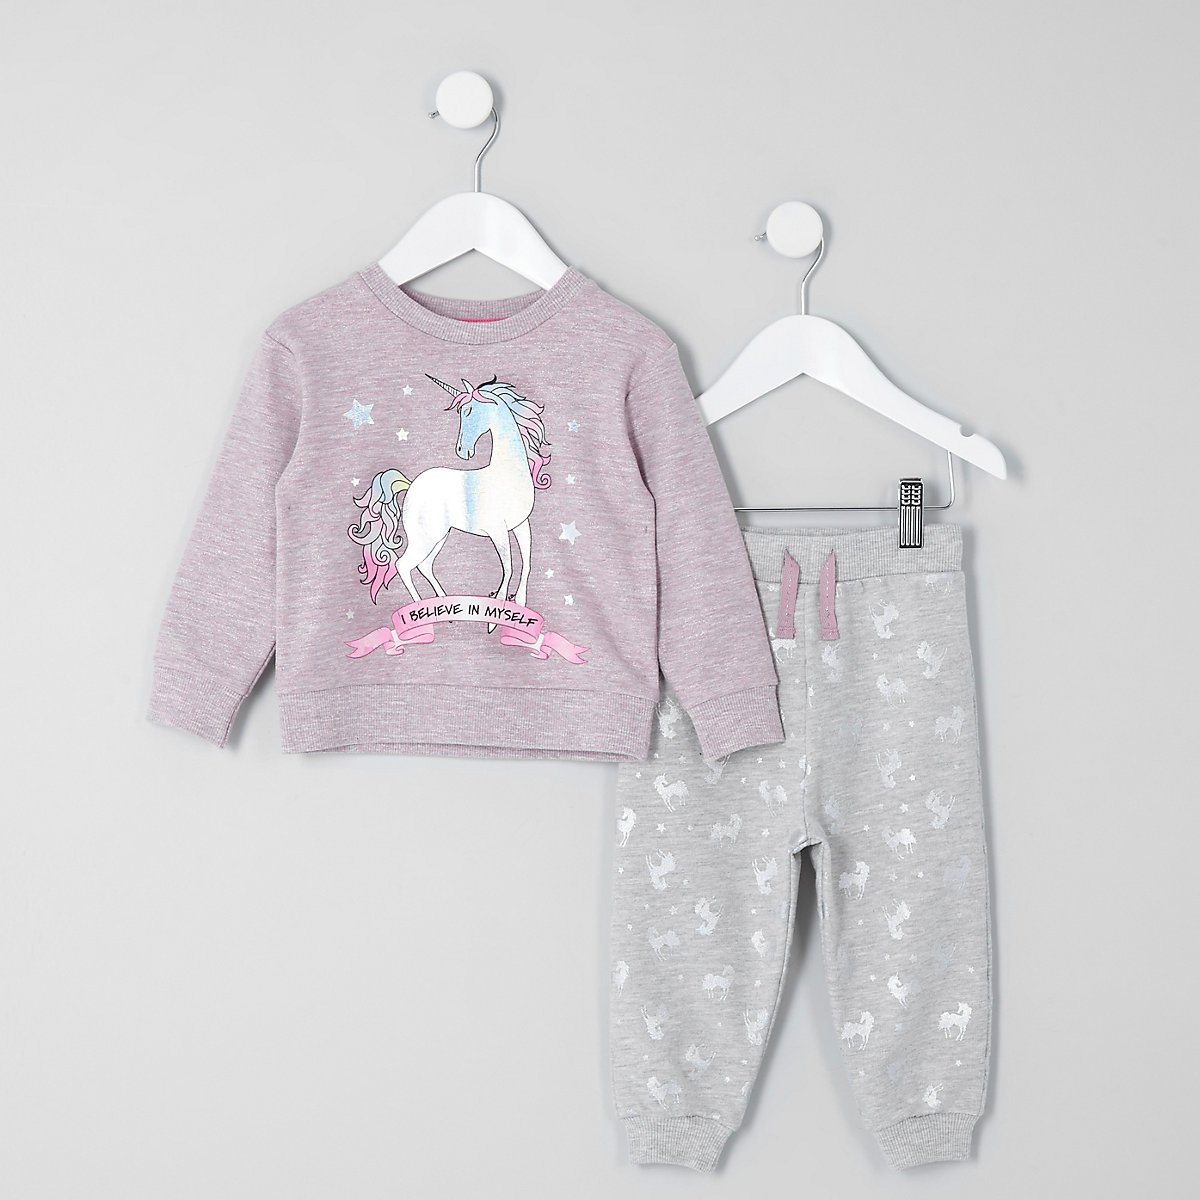 Mini girls purple 'I believe' pajama set